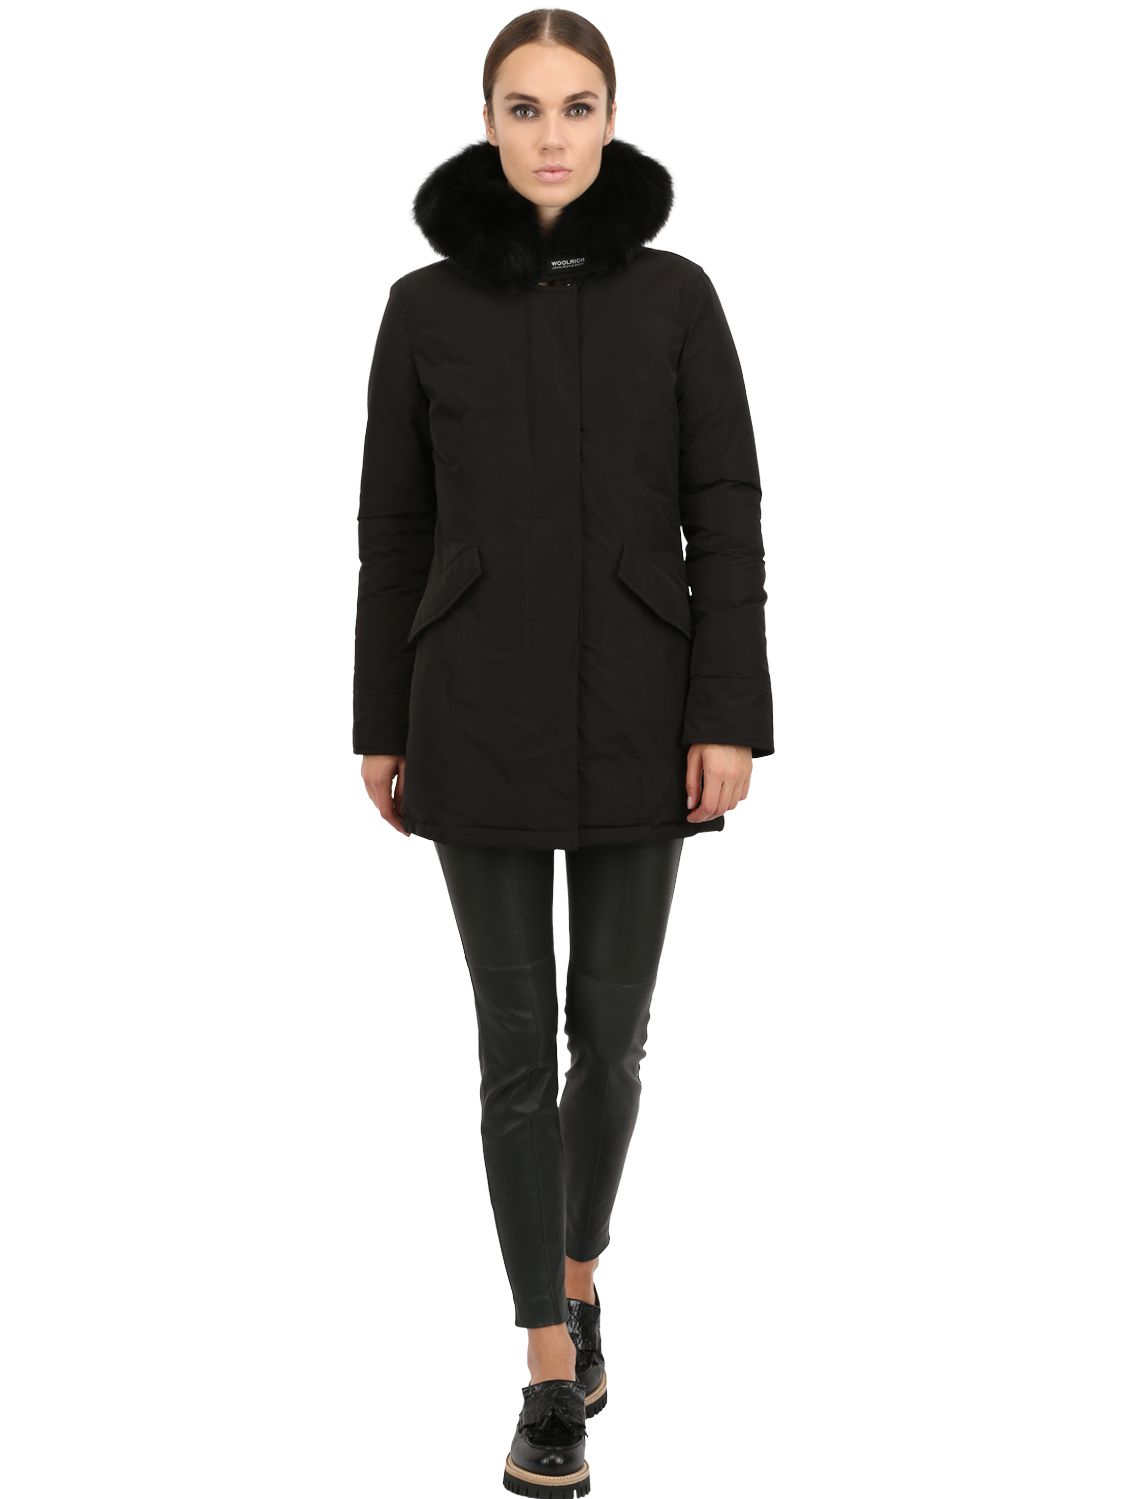 competitive price bb1eb d6045 Woolrich Shape Memory Luxury Arctic Parka in Black - Lyst